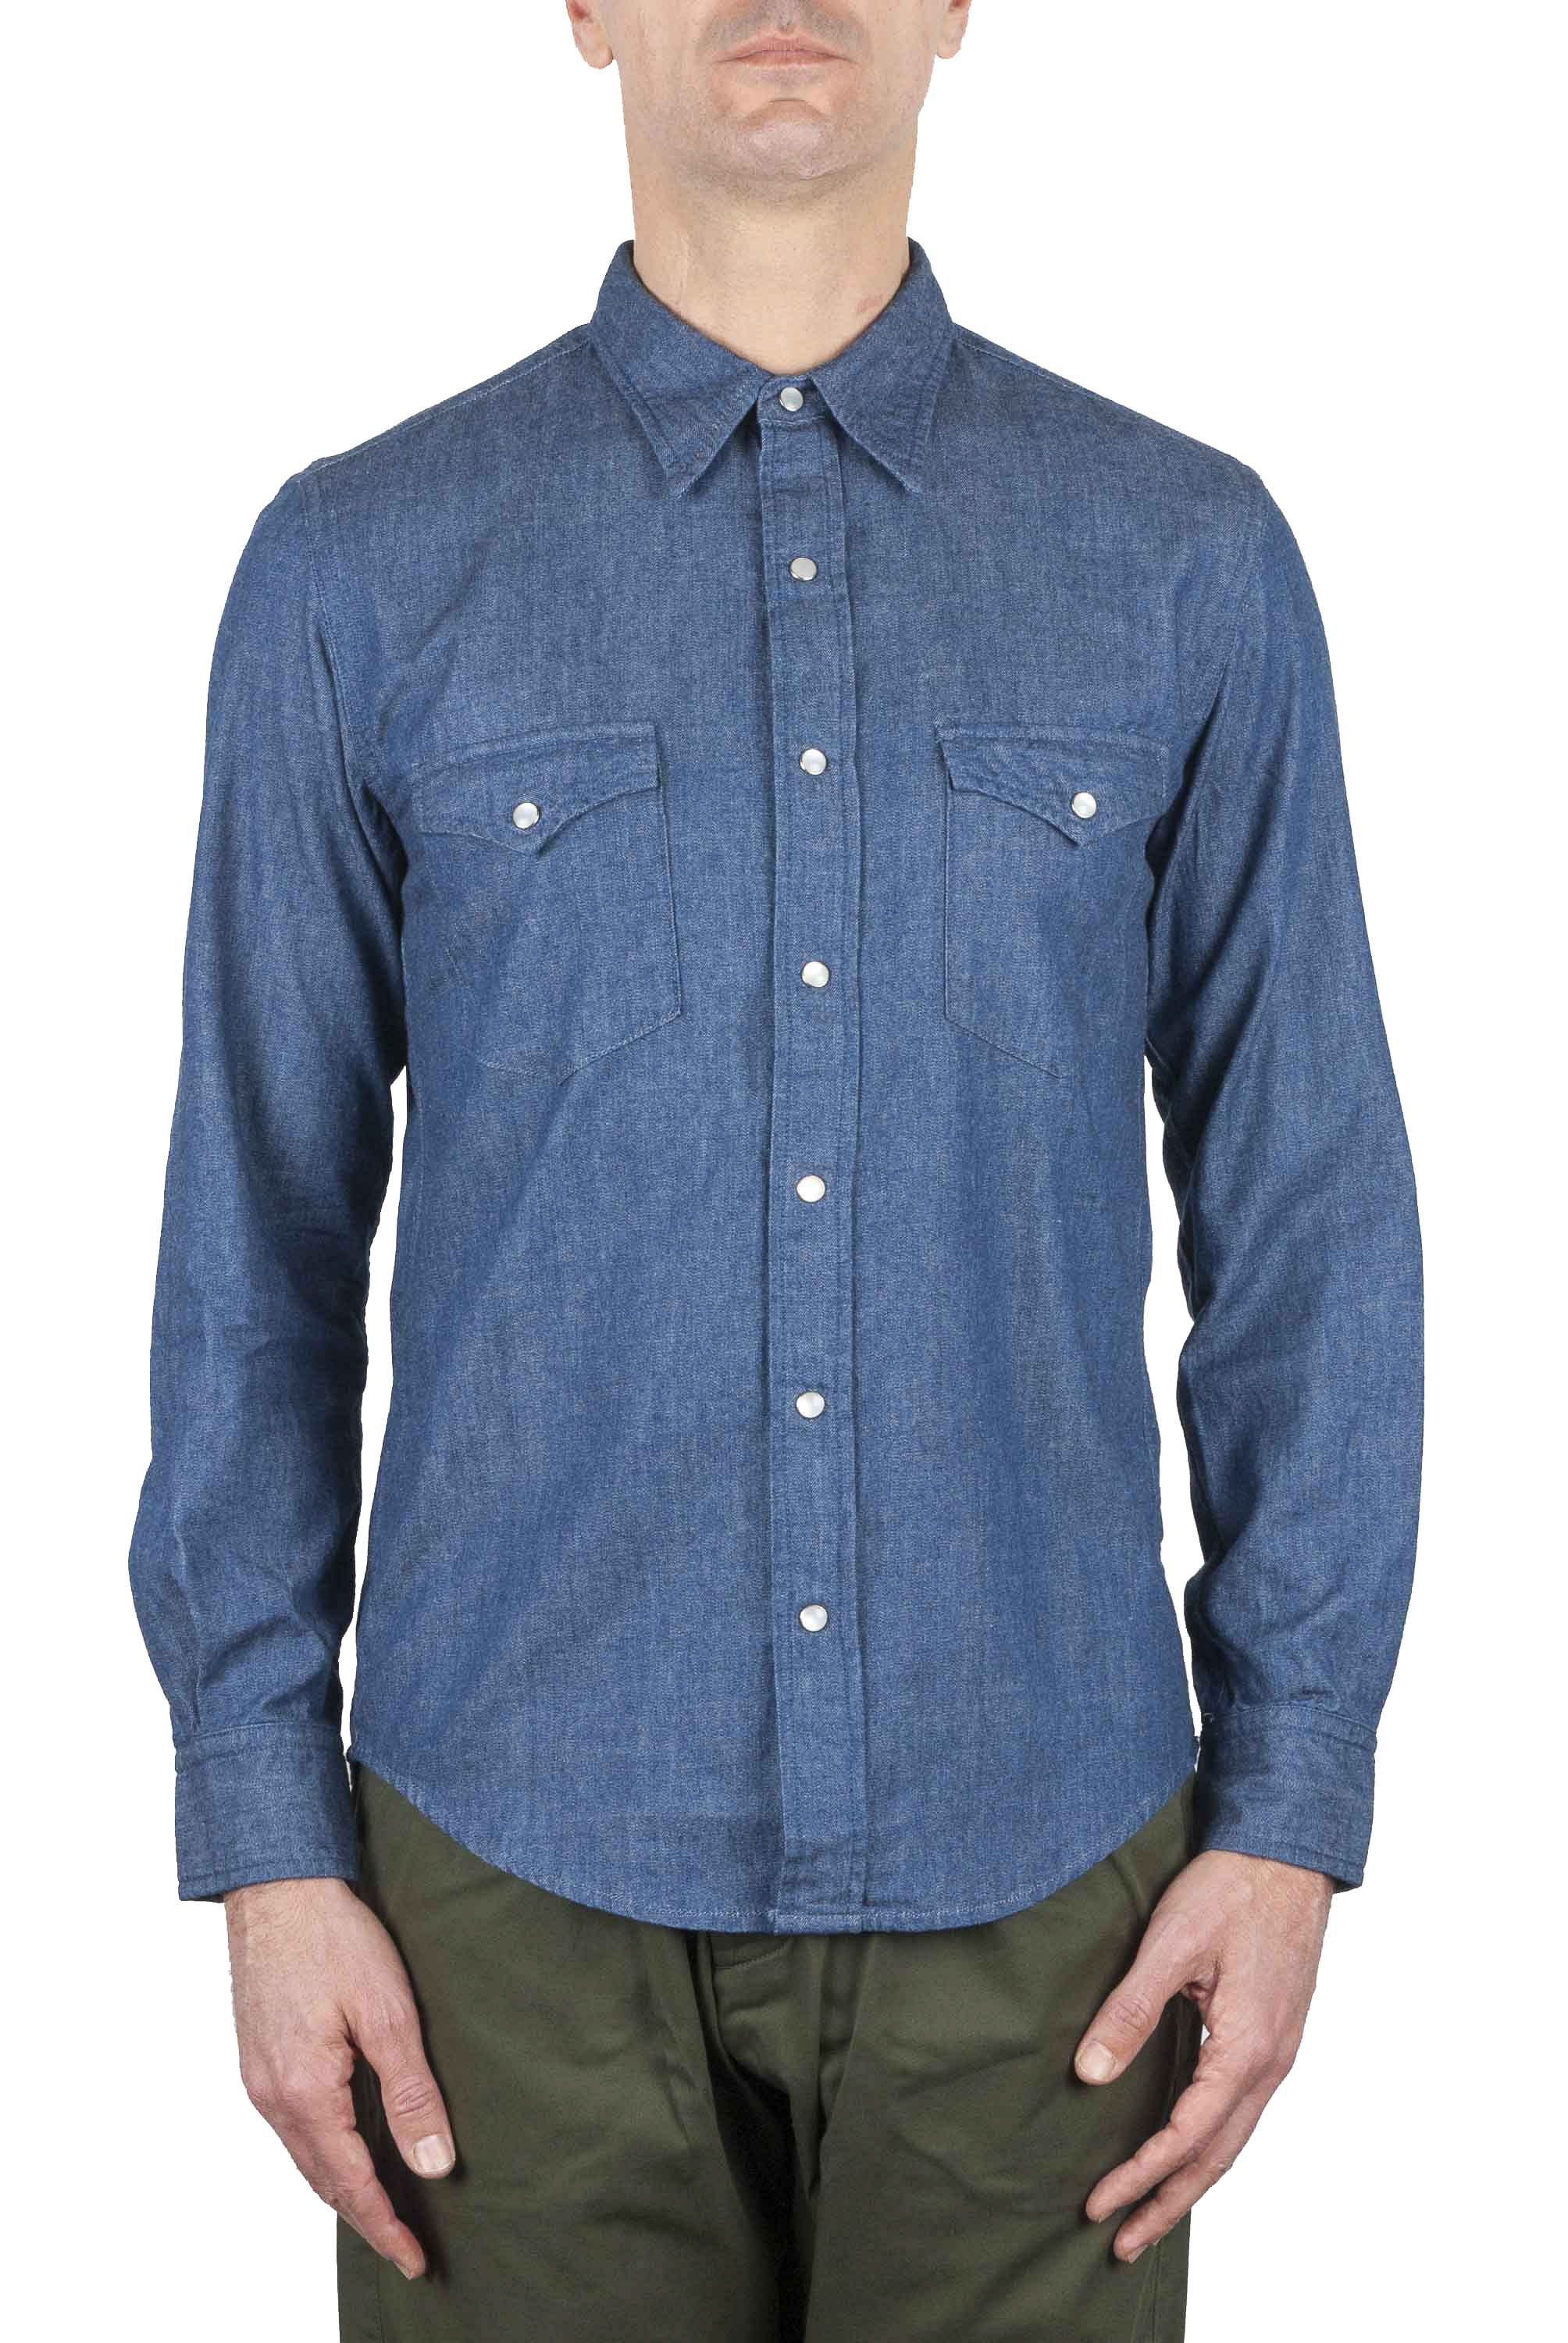 SBU 01616 Natural indigo chambray cotton western shirt 01